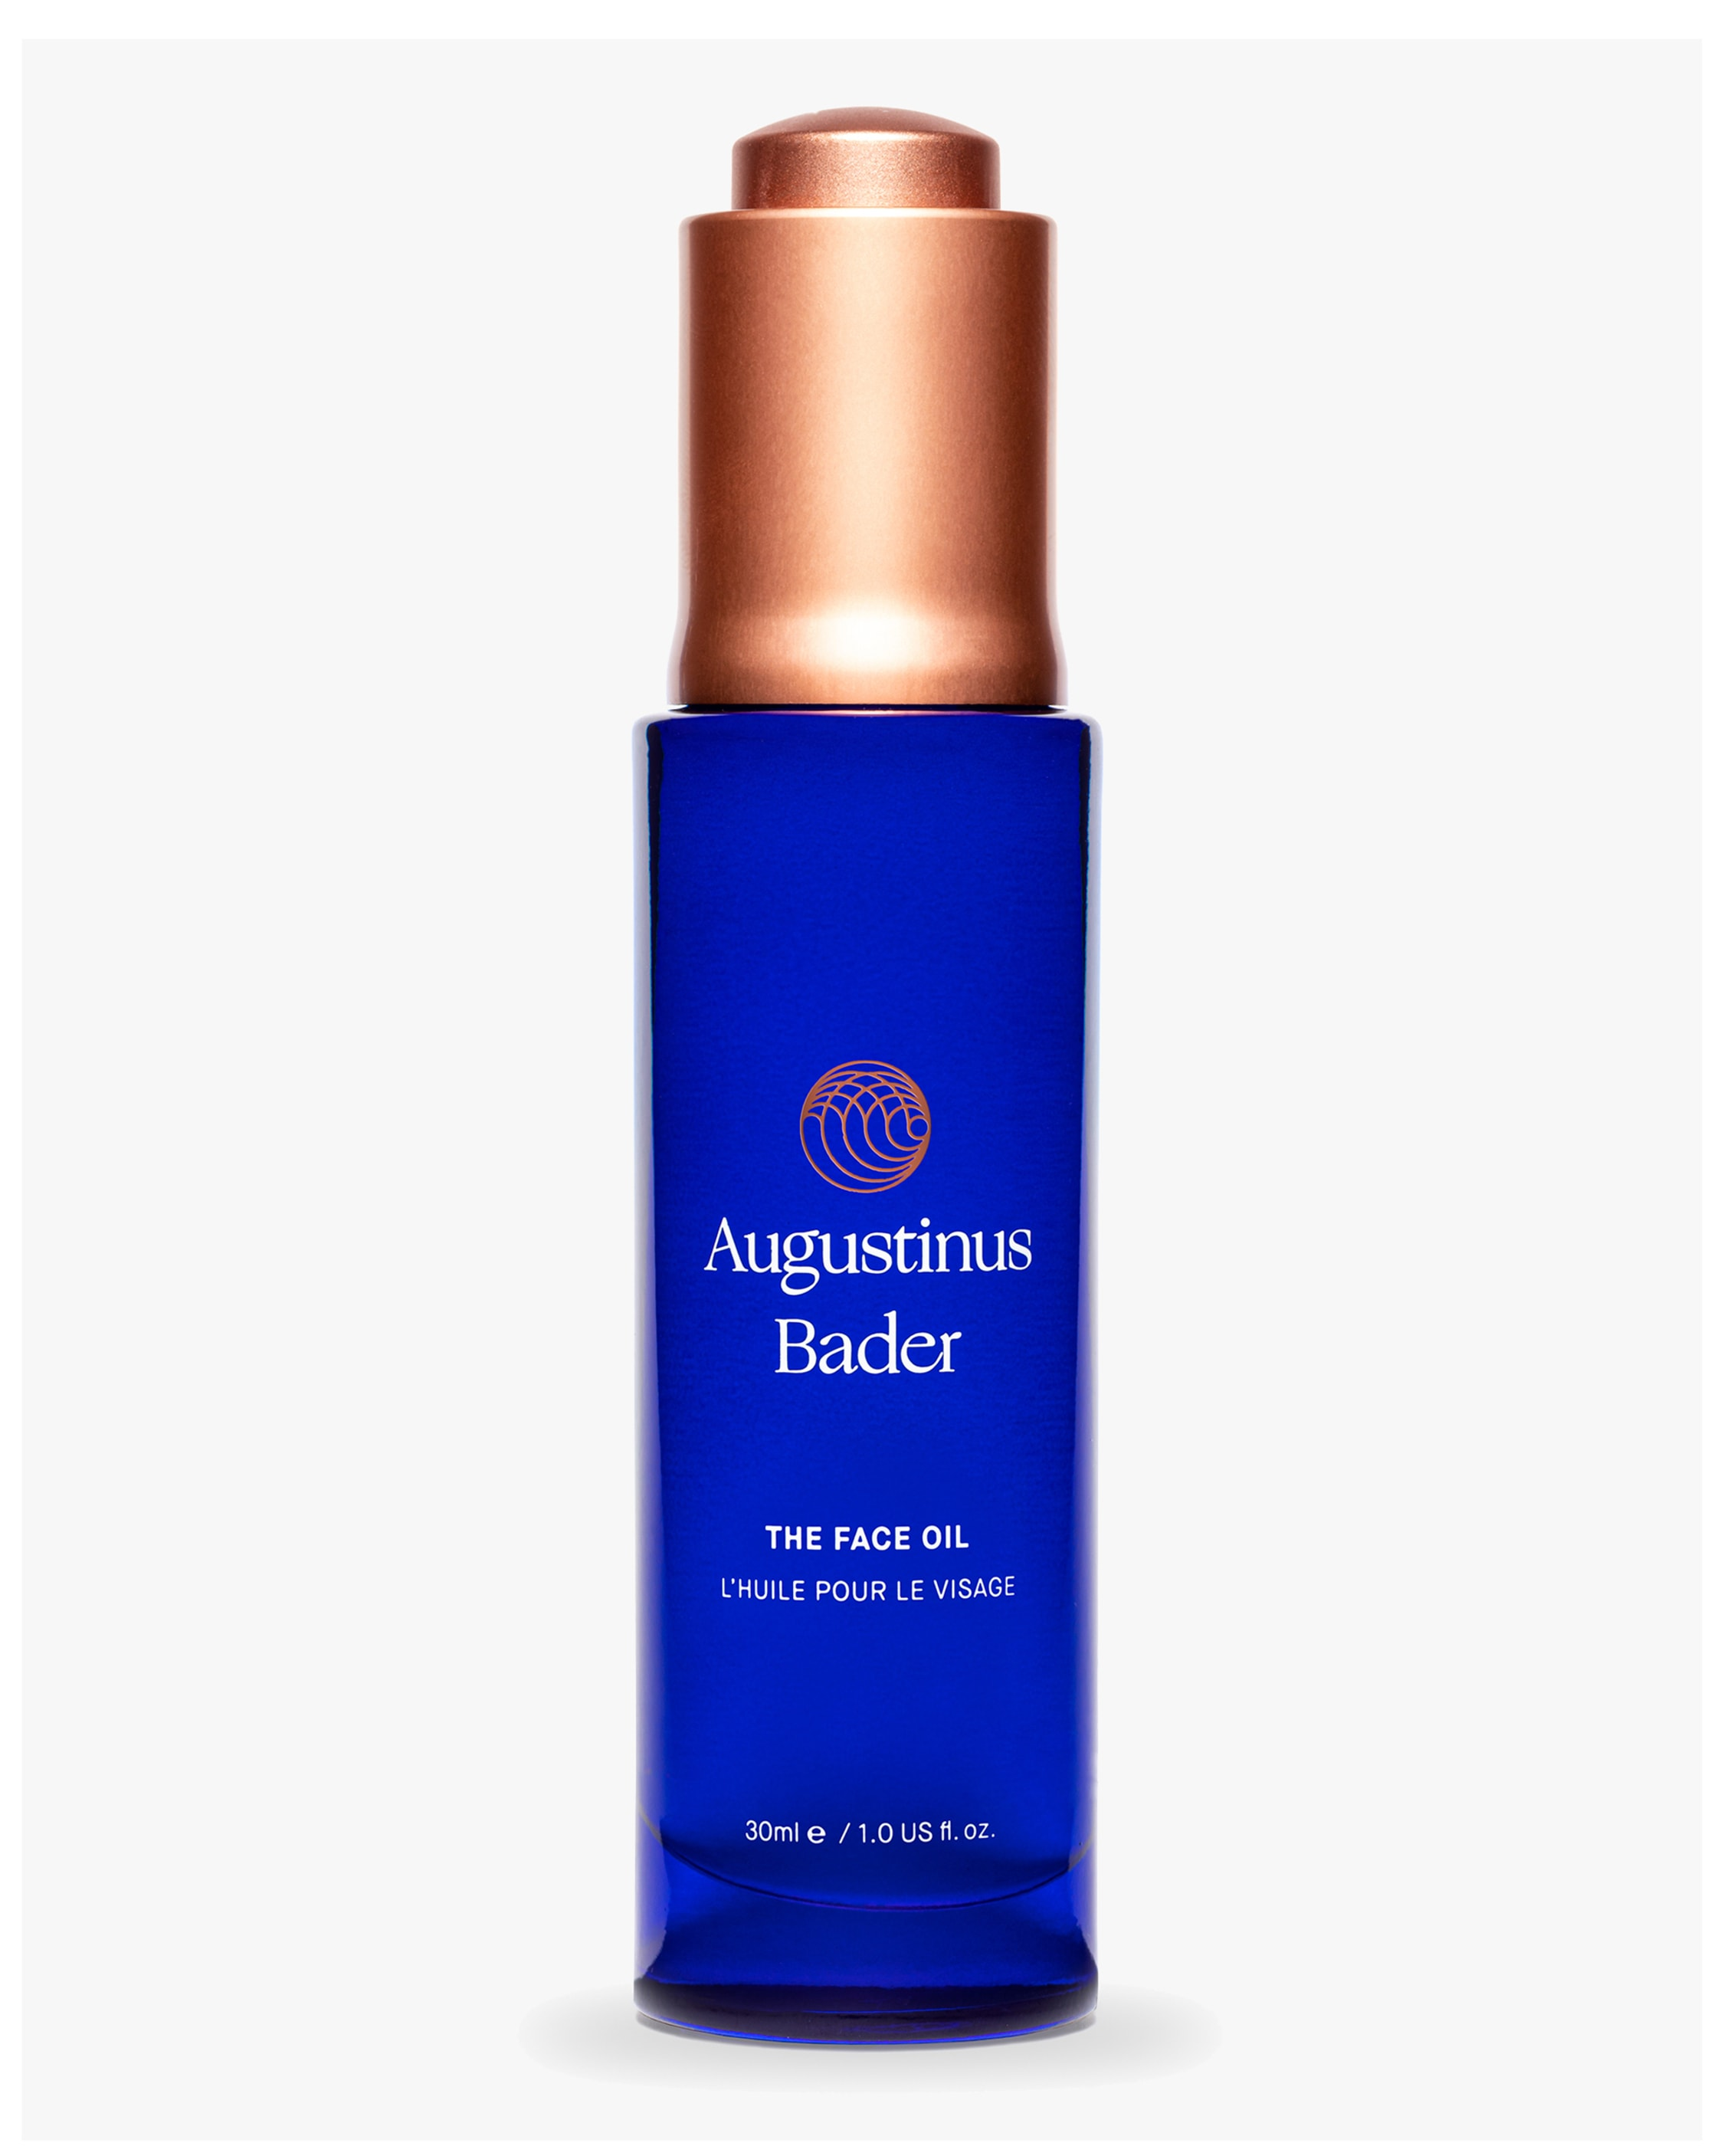 Augustinus Bader The Face Oil 30ml 1